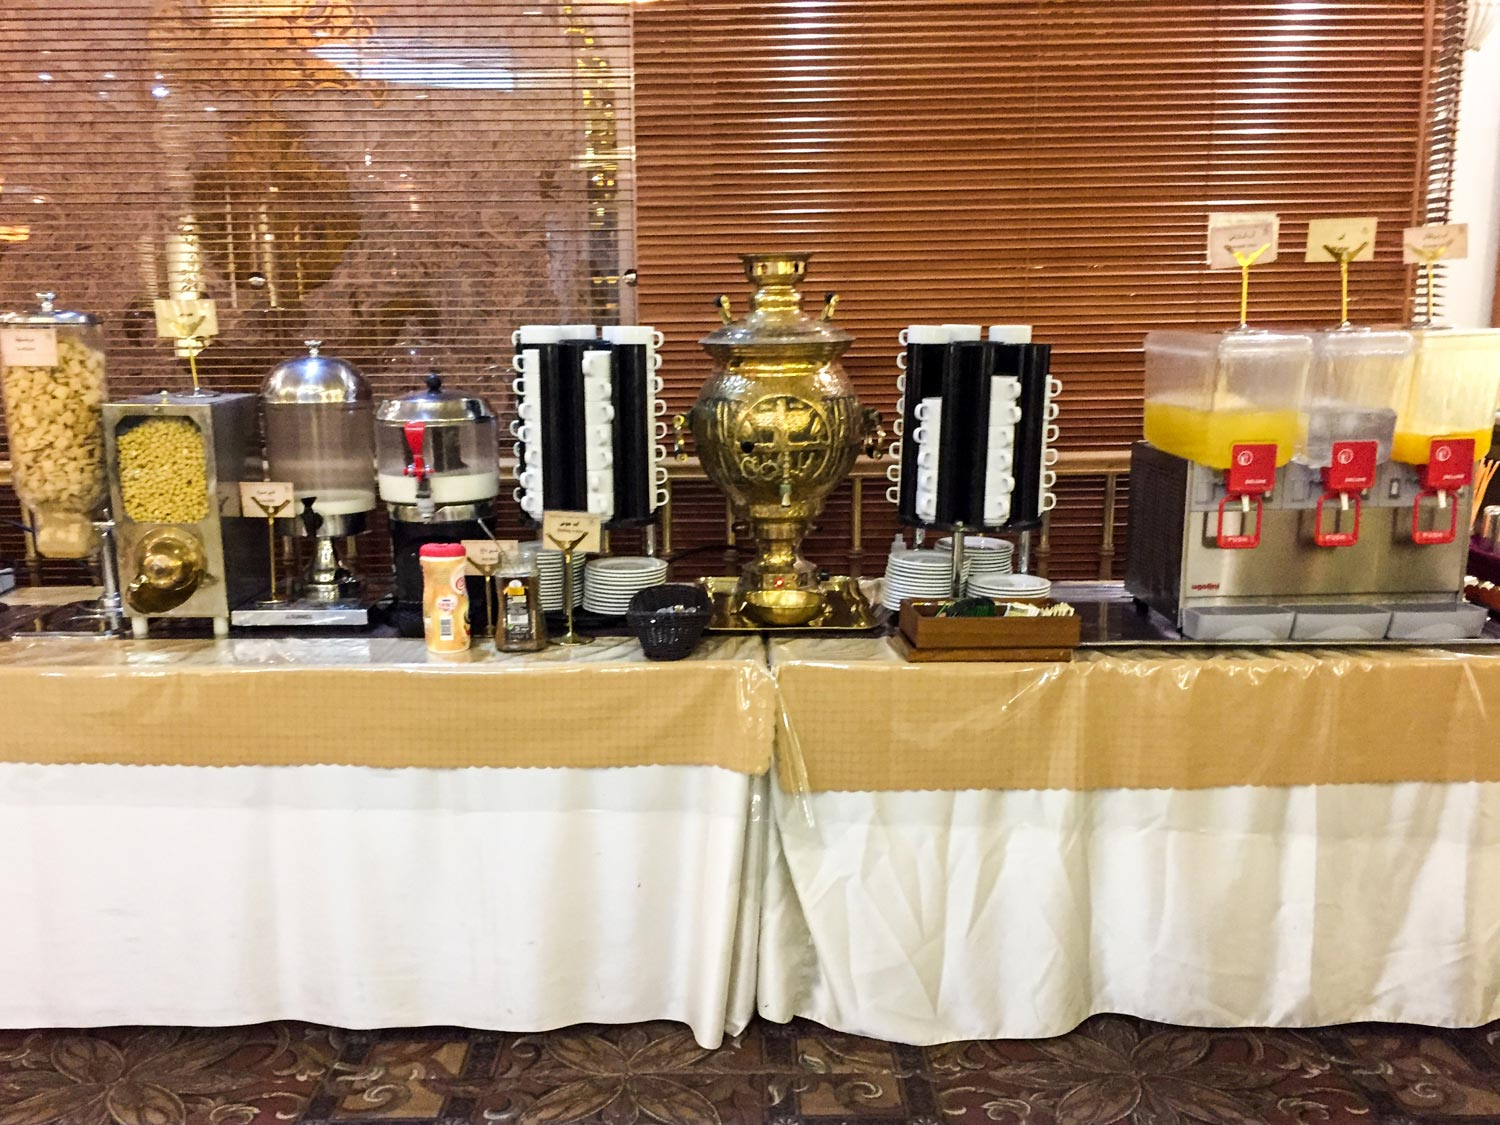 Setareh Hotel Isfahan - Various coffee, tea, and juices were available on the buffet